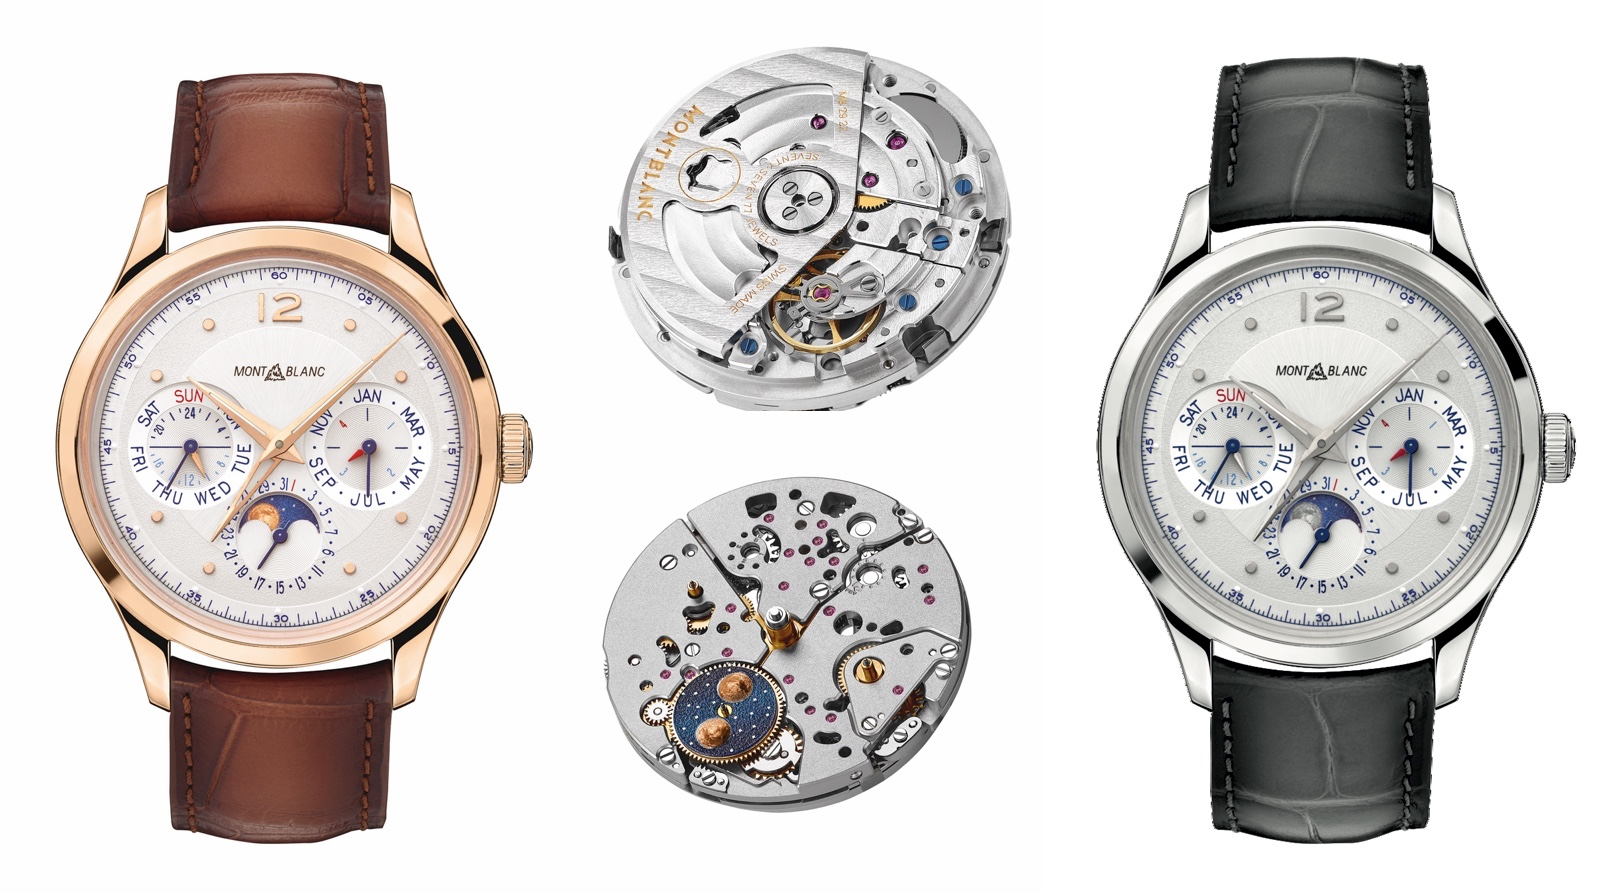 Montblanc Heritage Manufacture Perpetual Calendar SIHH 2019 Modelos